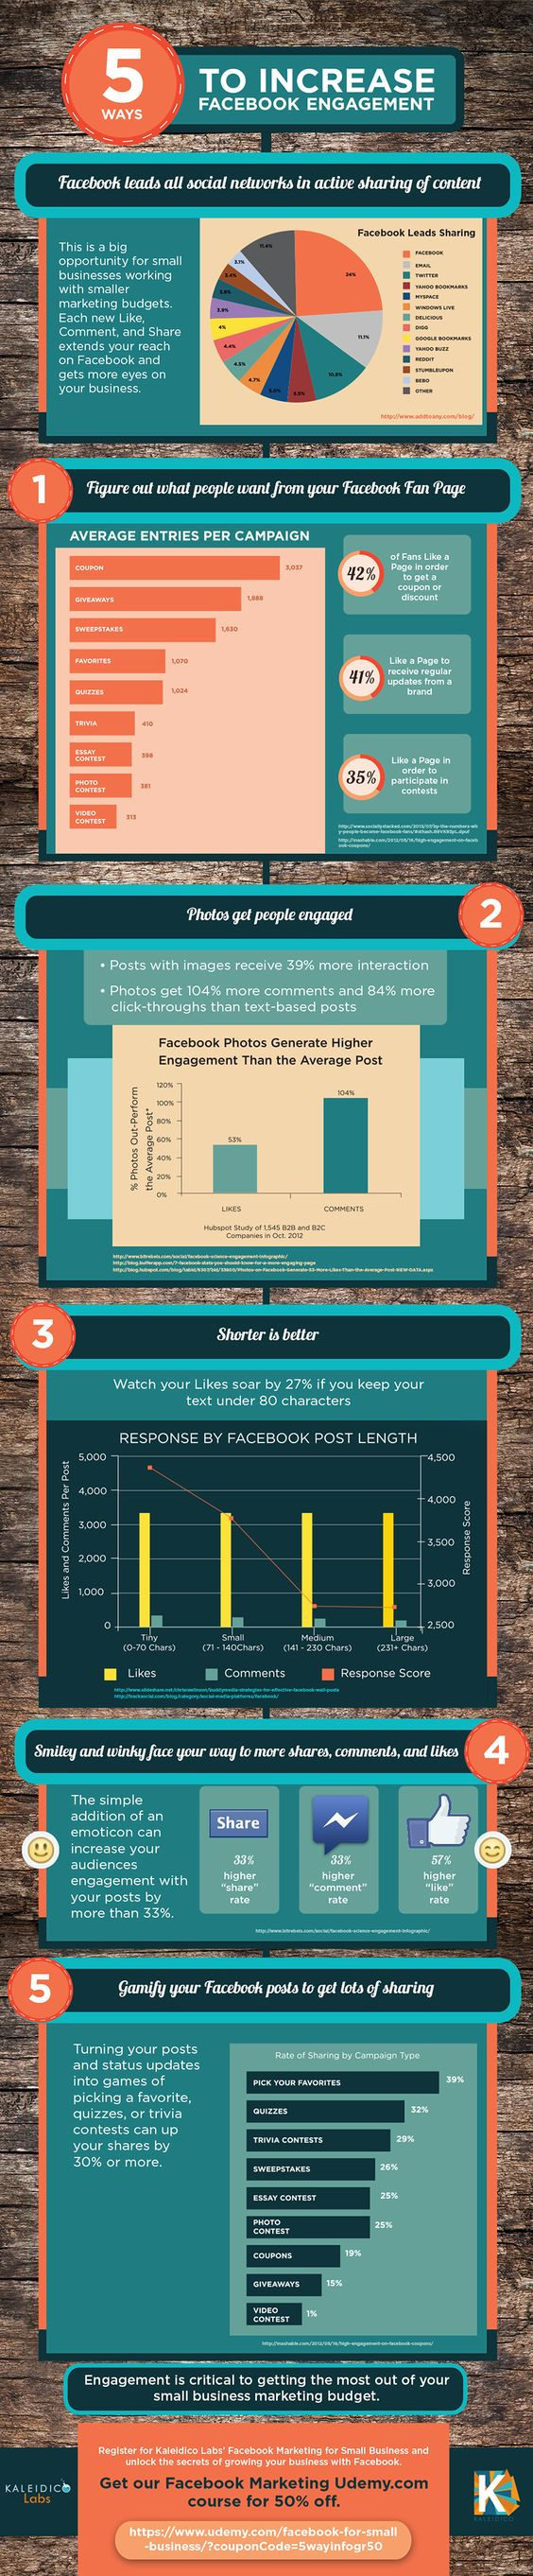 5 Tips to increase Facebook Engagement #infografia #infographic #socialmedia